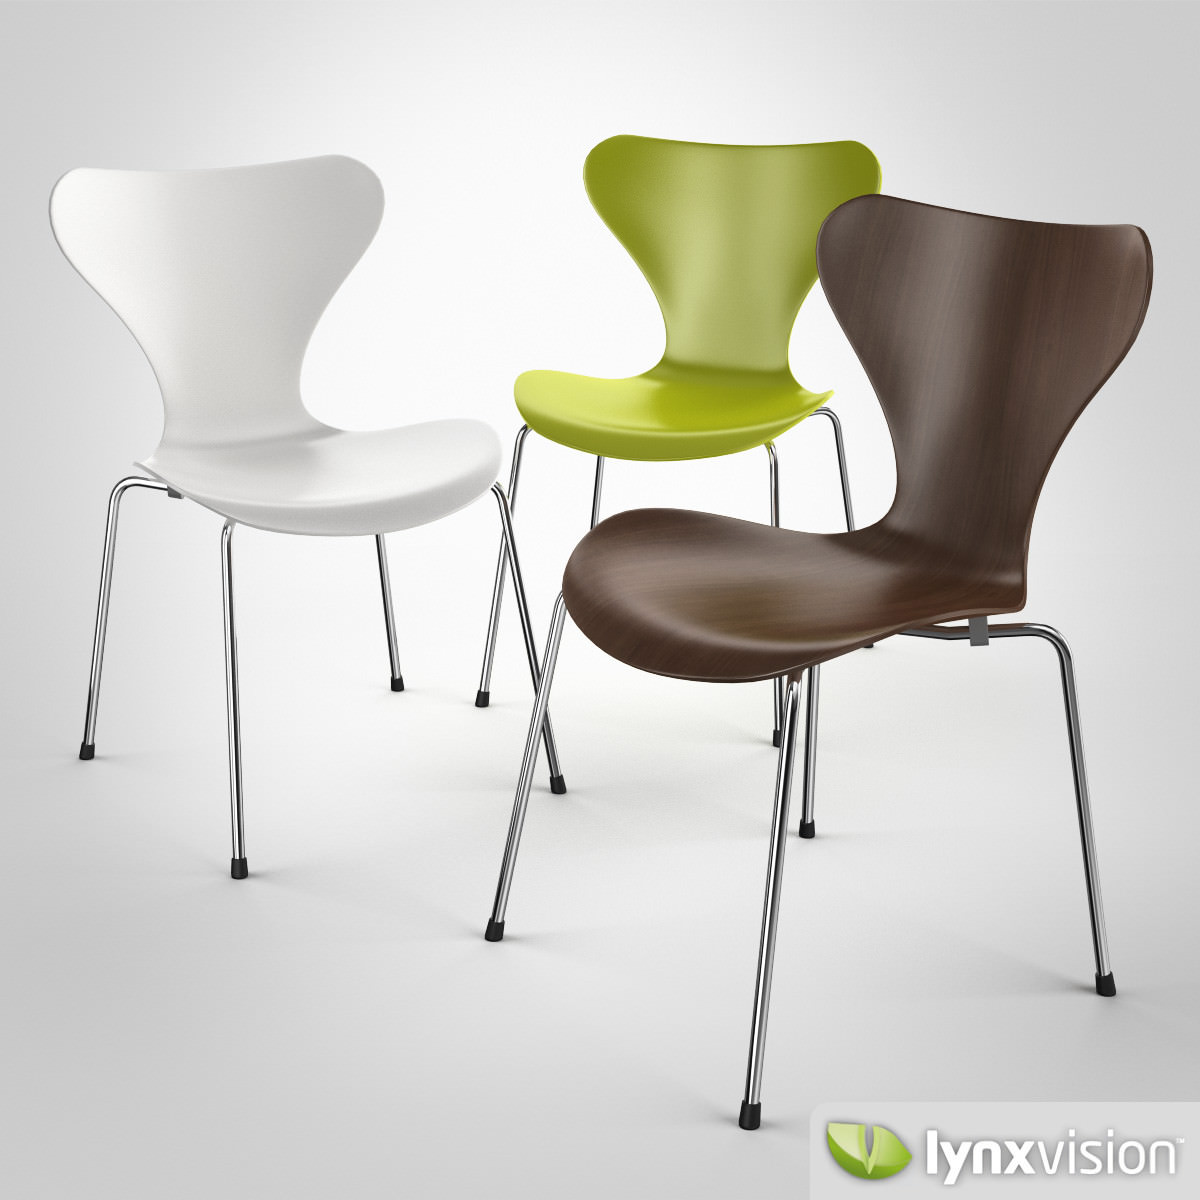 Serie 7 Chair By Arne Jacobsen 3d Model Cgtrader - Arne Jacobsen Chair